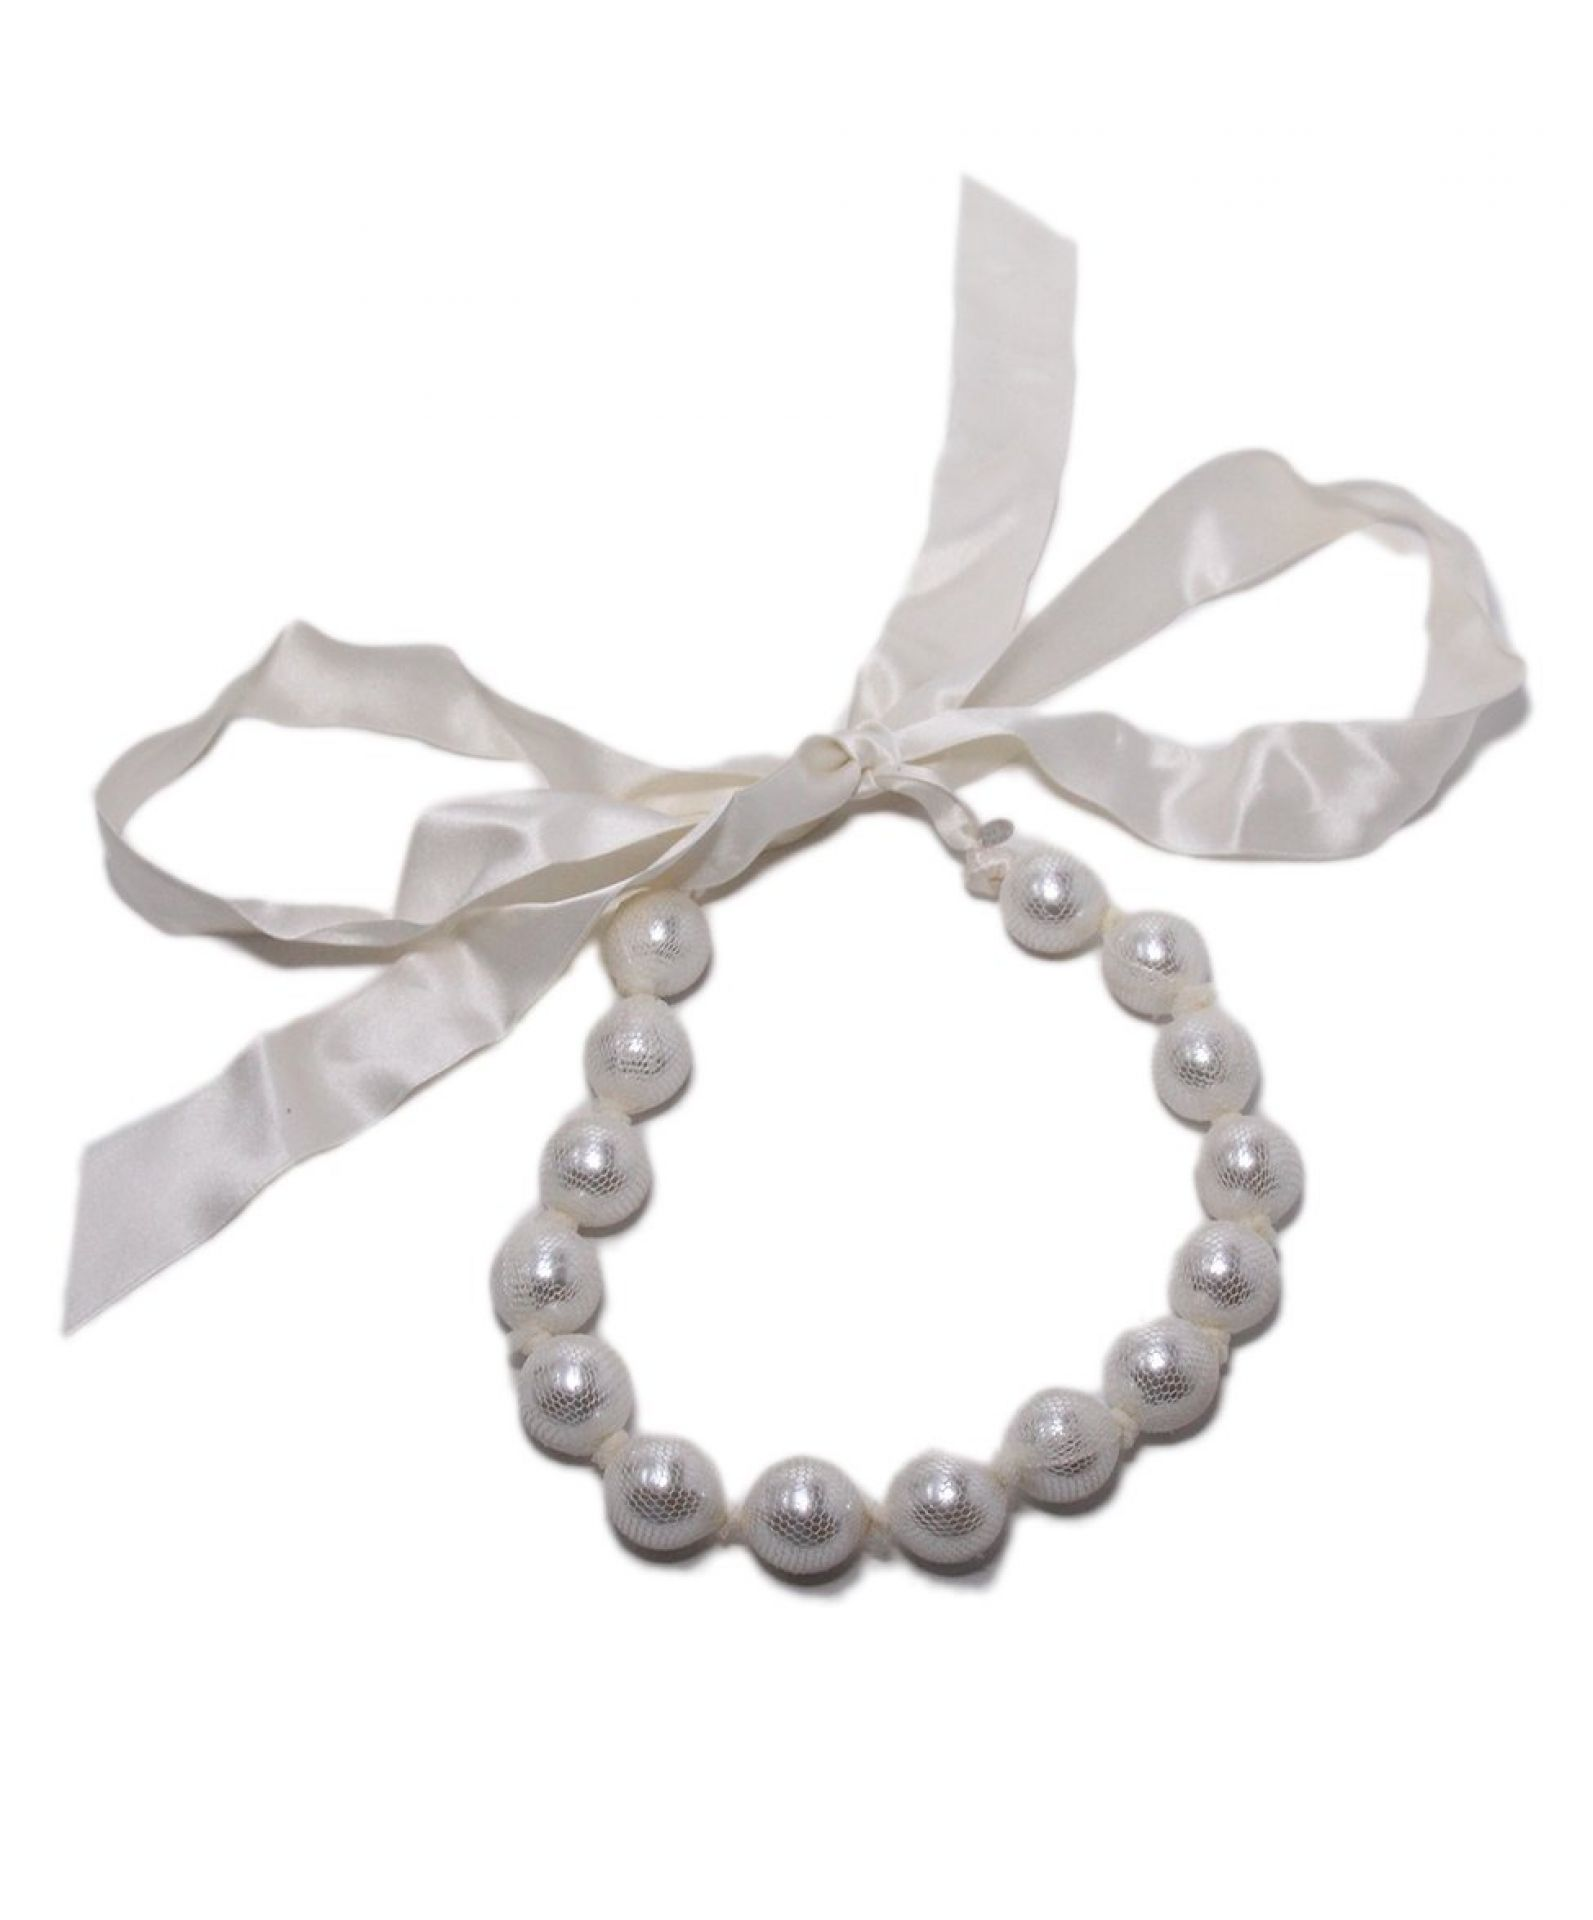 LANVIN NEUTRAL WHITE BEADED SILVER RIBBON NECKLACE